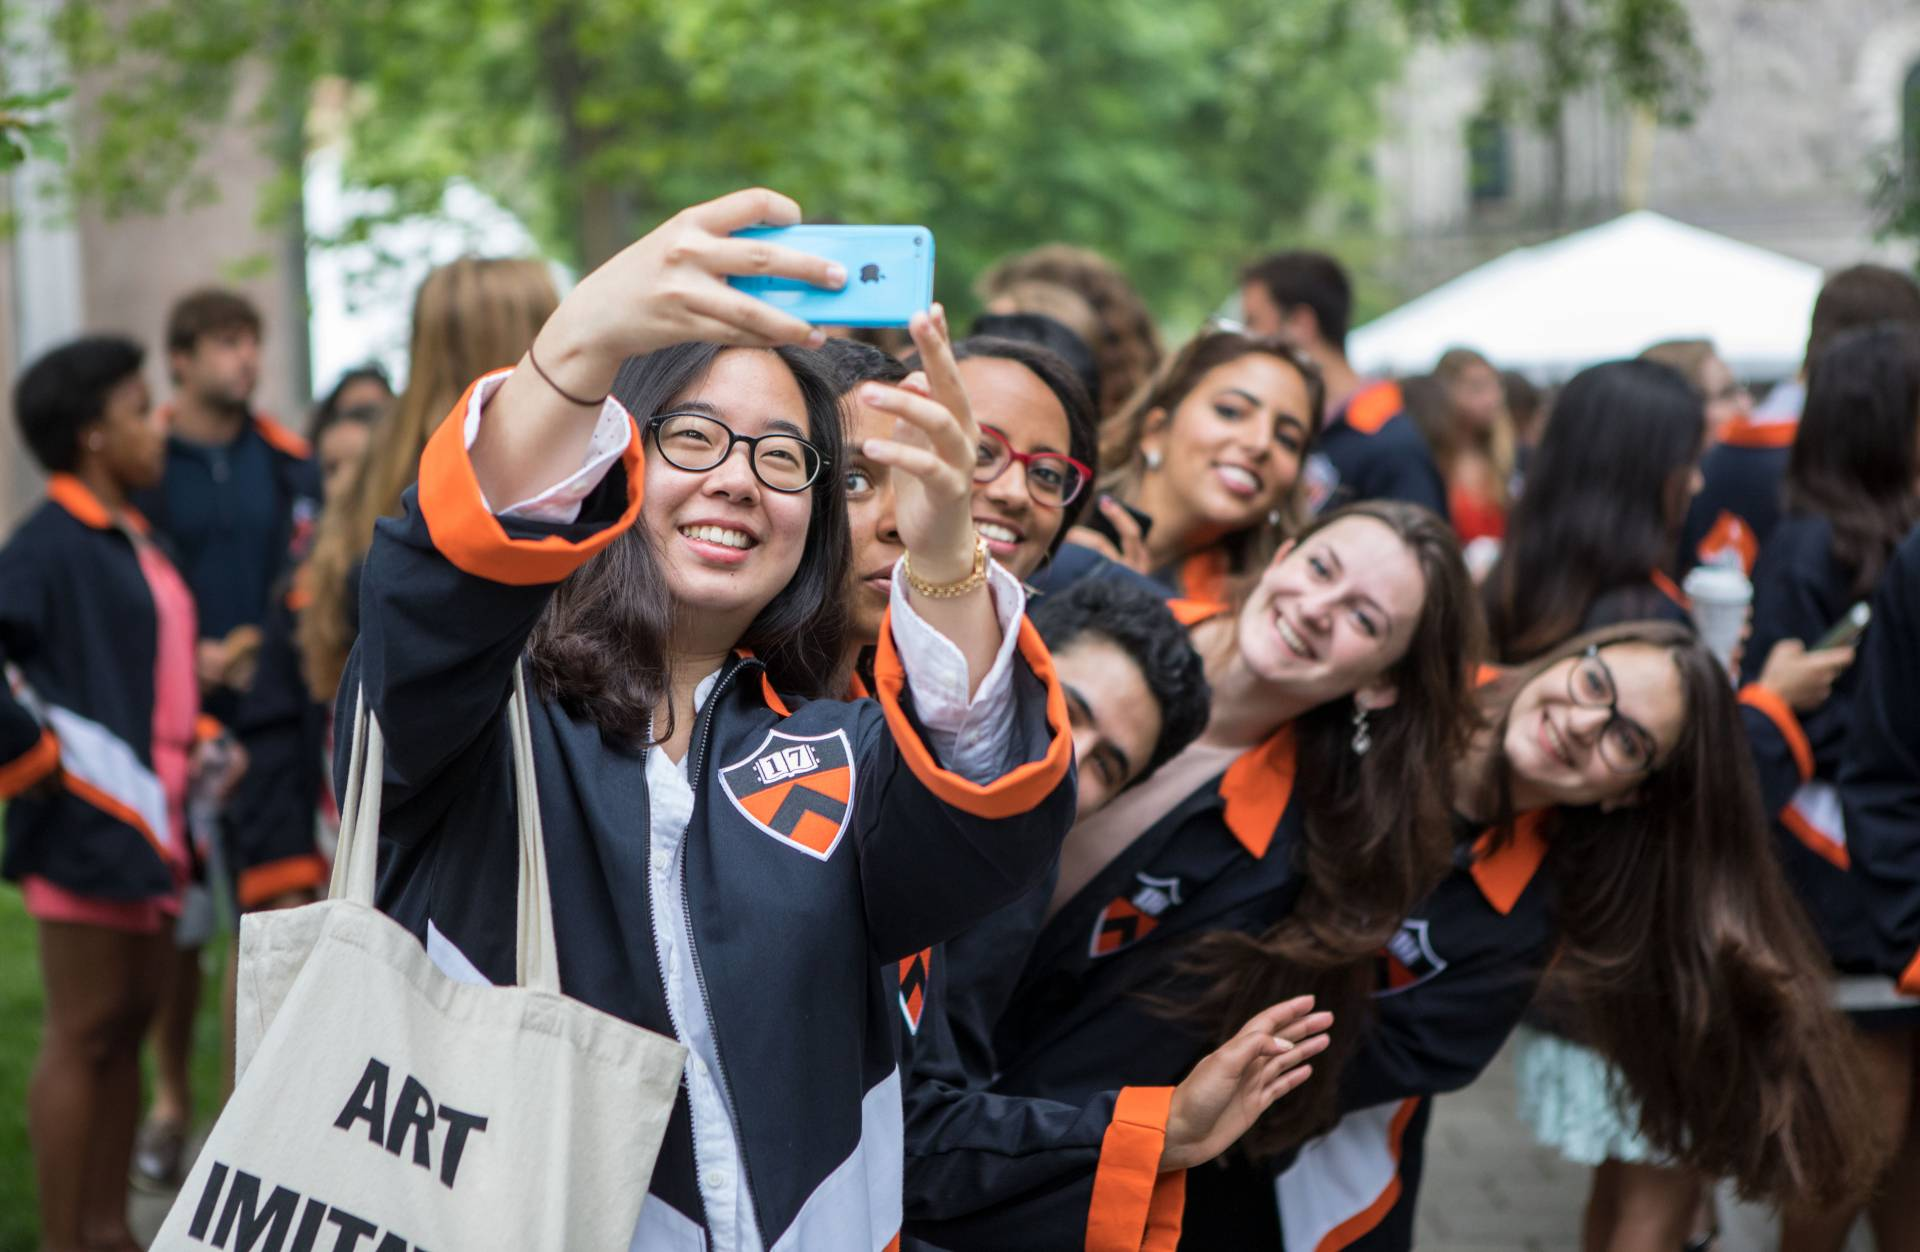 Students take selfie during Class Day 2017 ceremony